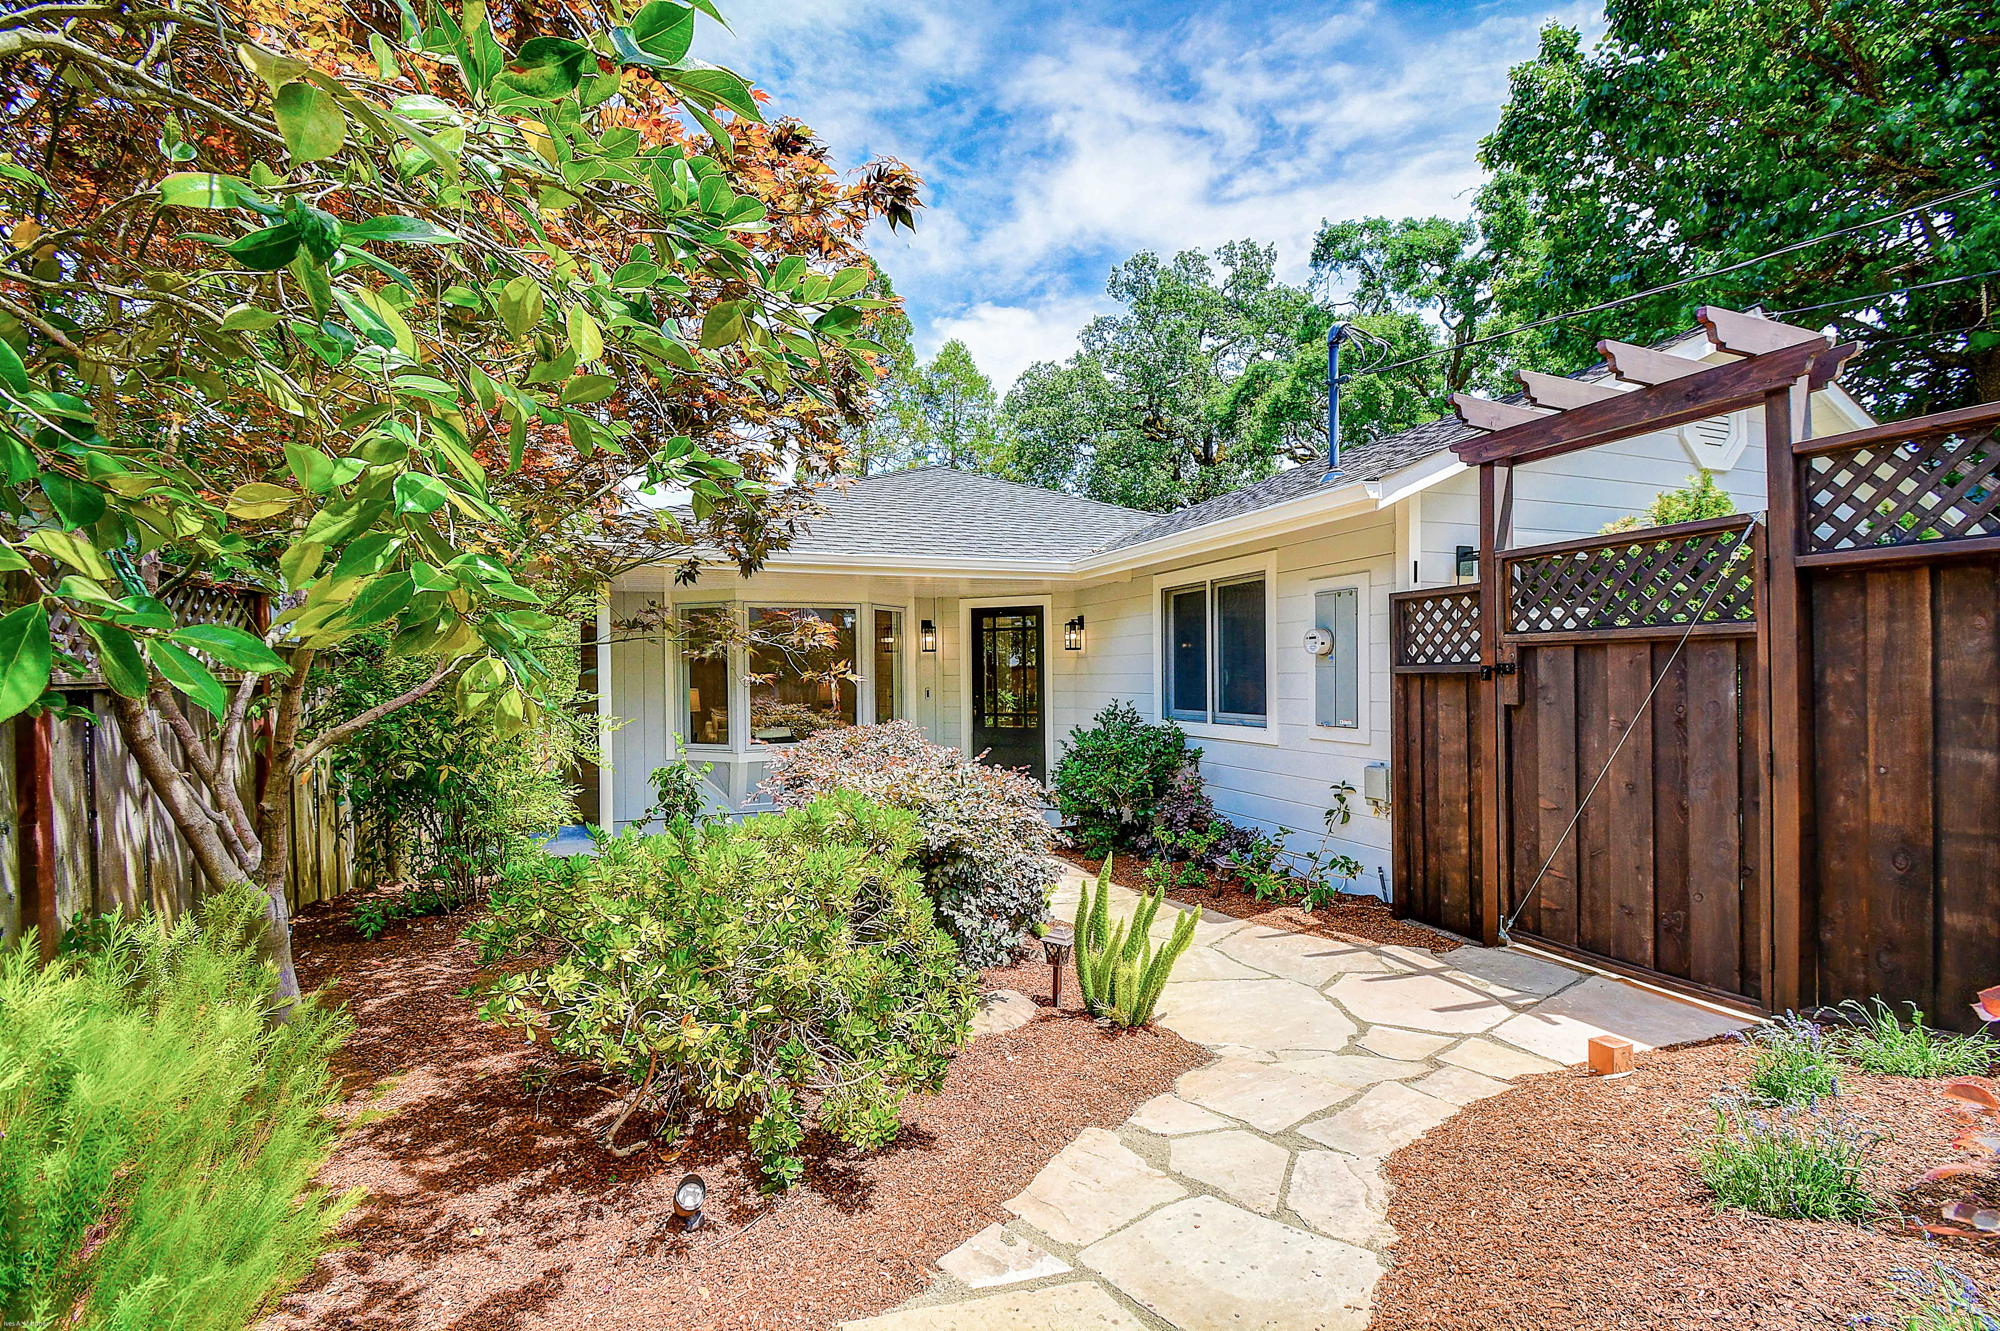 10 Broadway Kentfield's Top Realtor -15- Listed by Barr Haney | Team Own Marin with Compass Real Estate.jpg